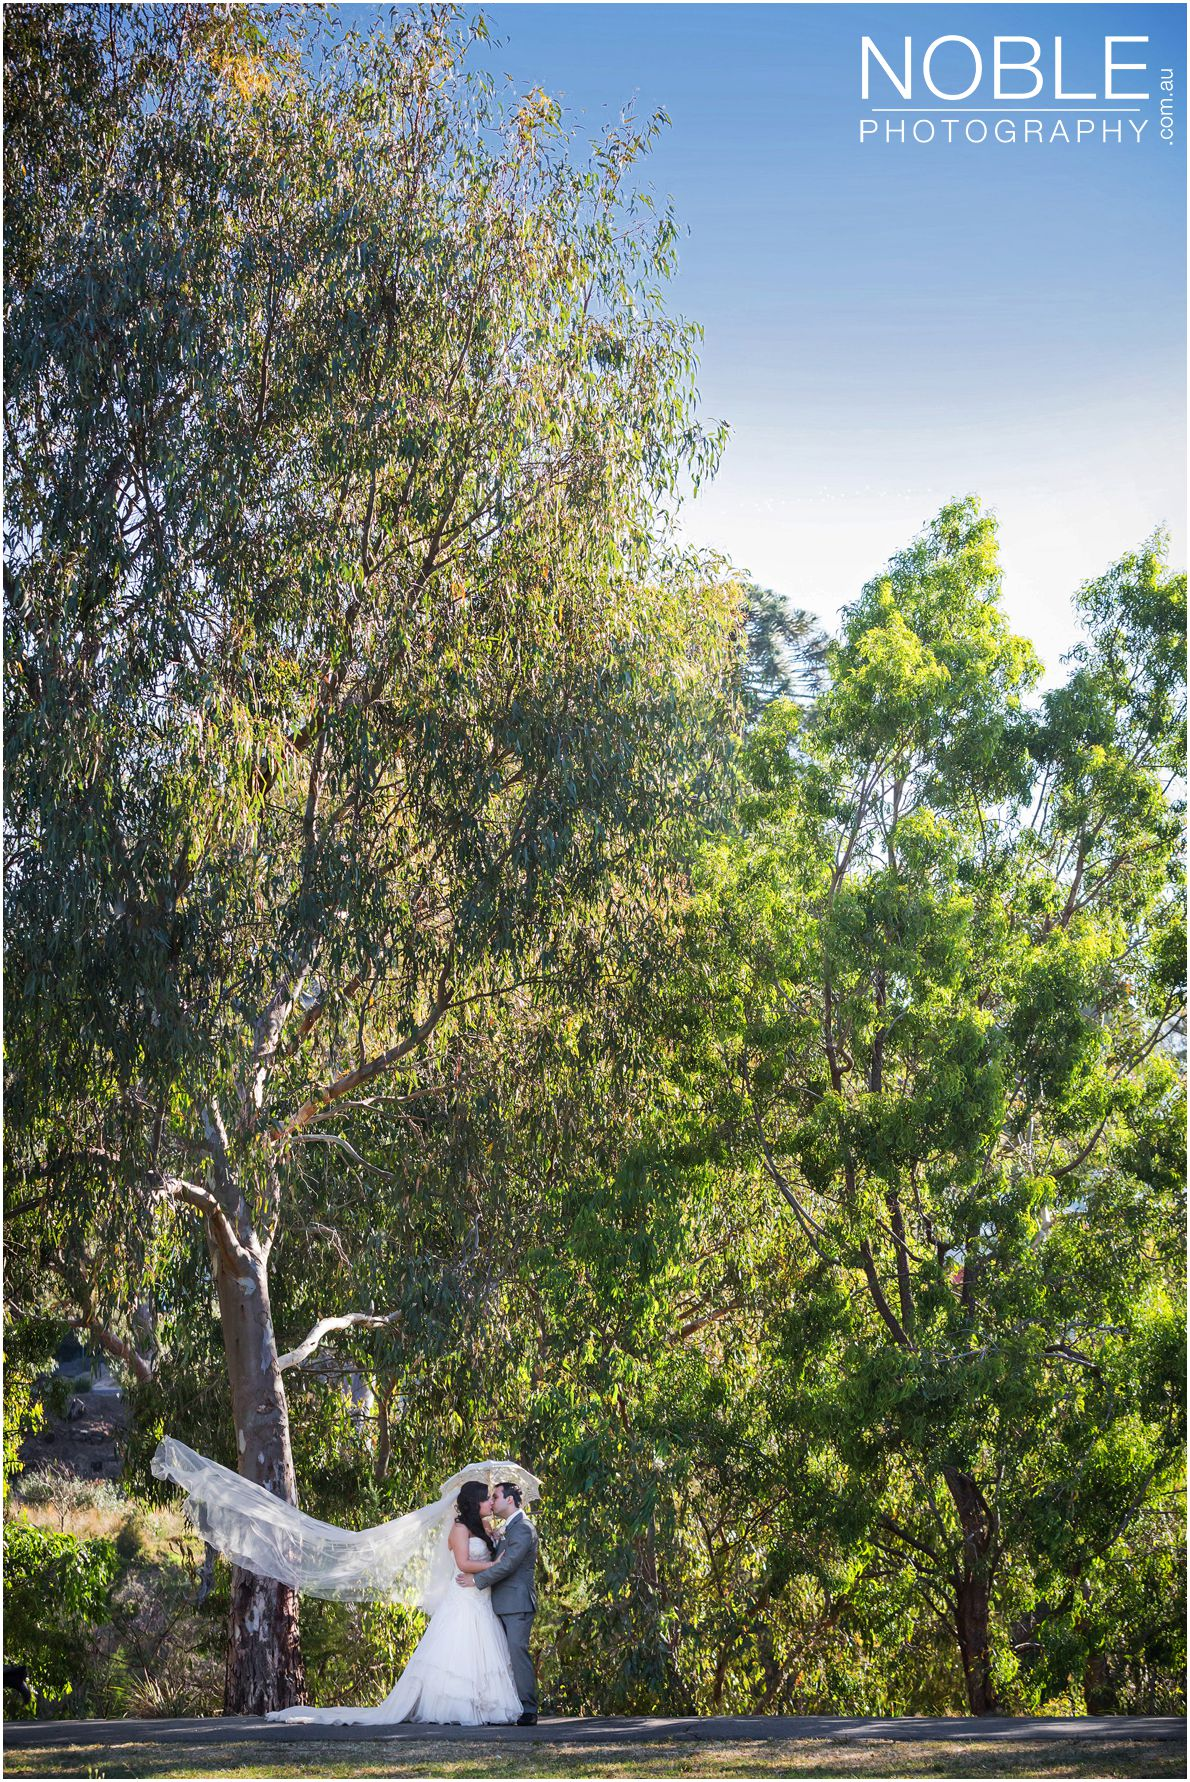 Location photos by the Yarra